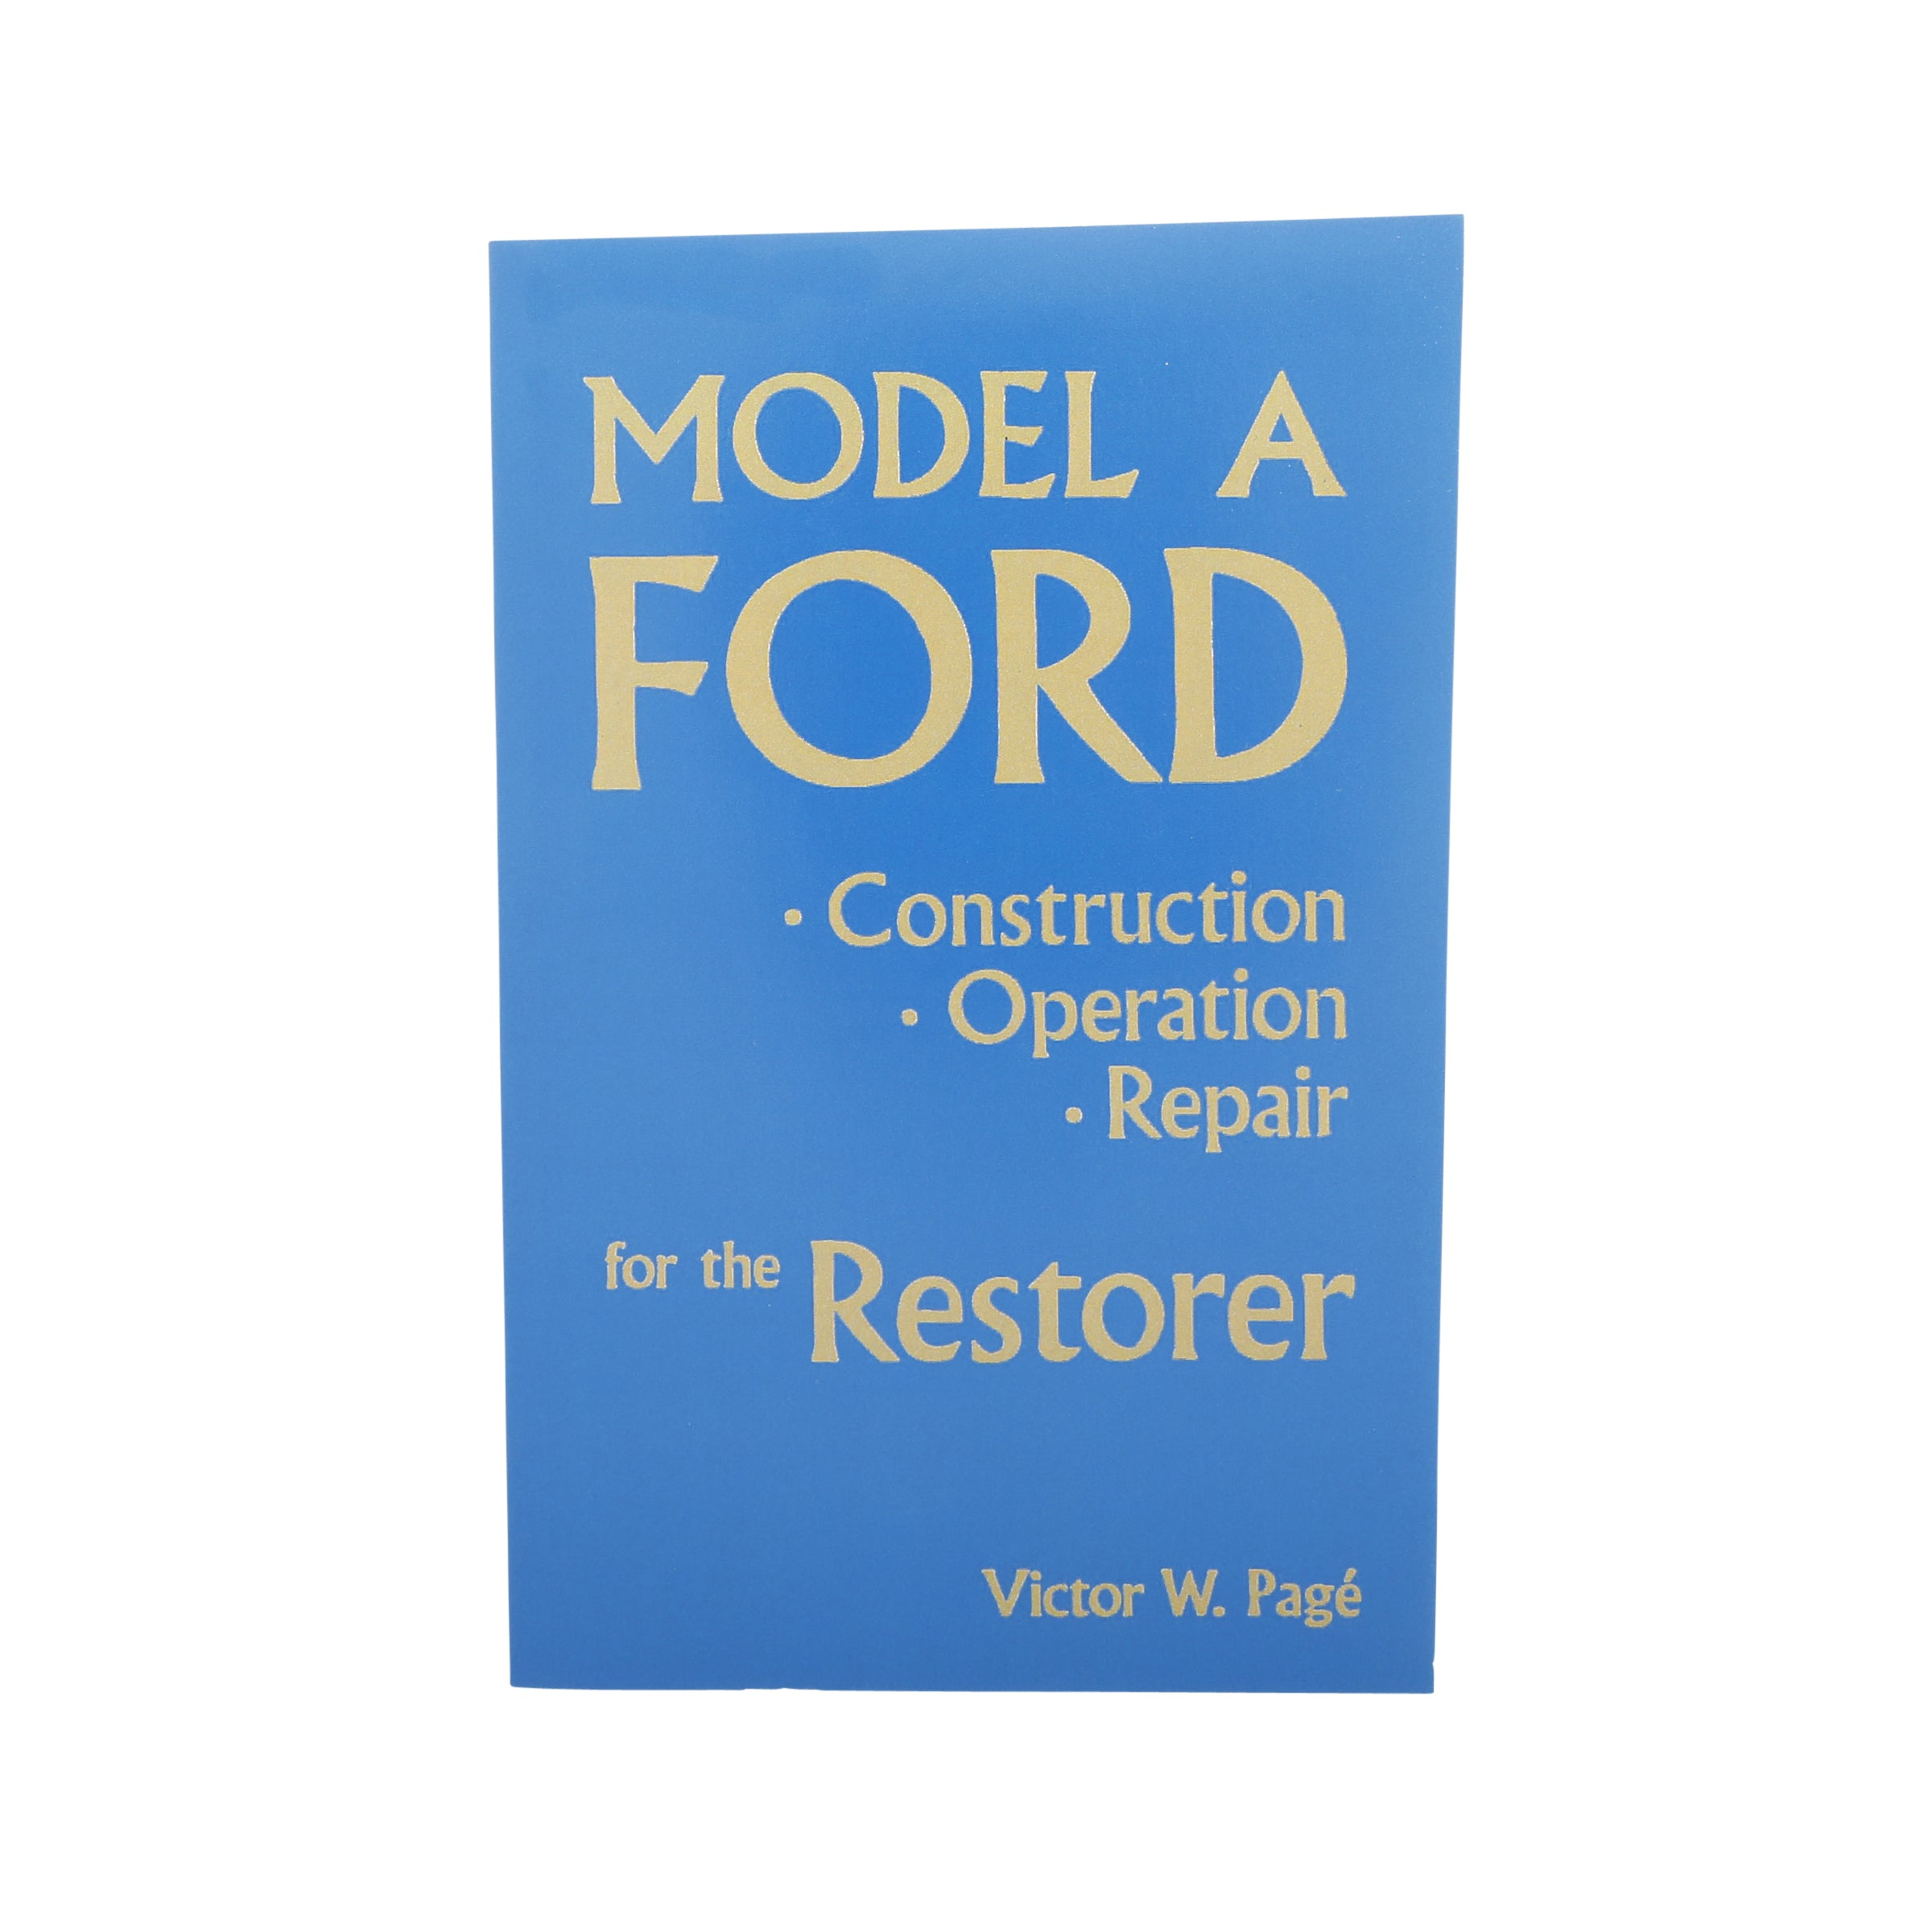 Model A Ford Construction and Operation